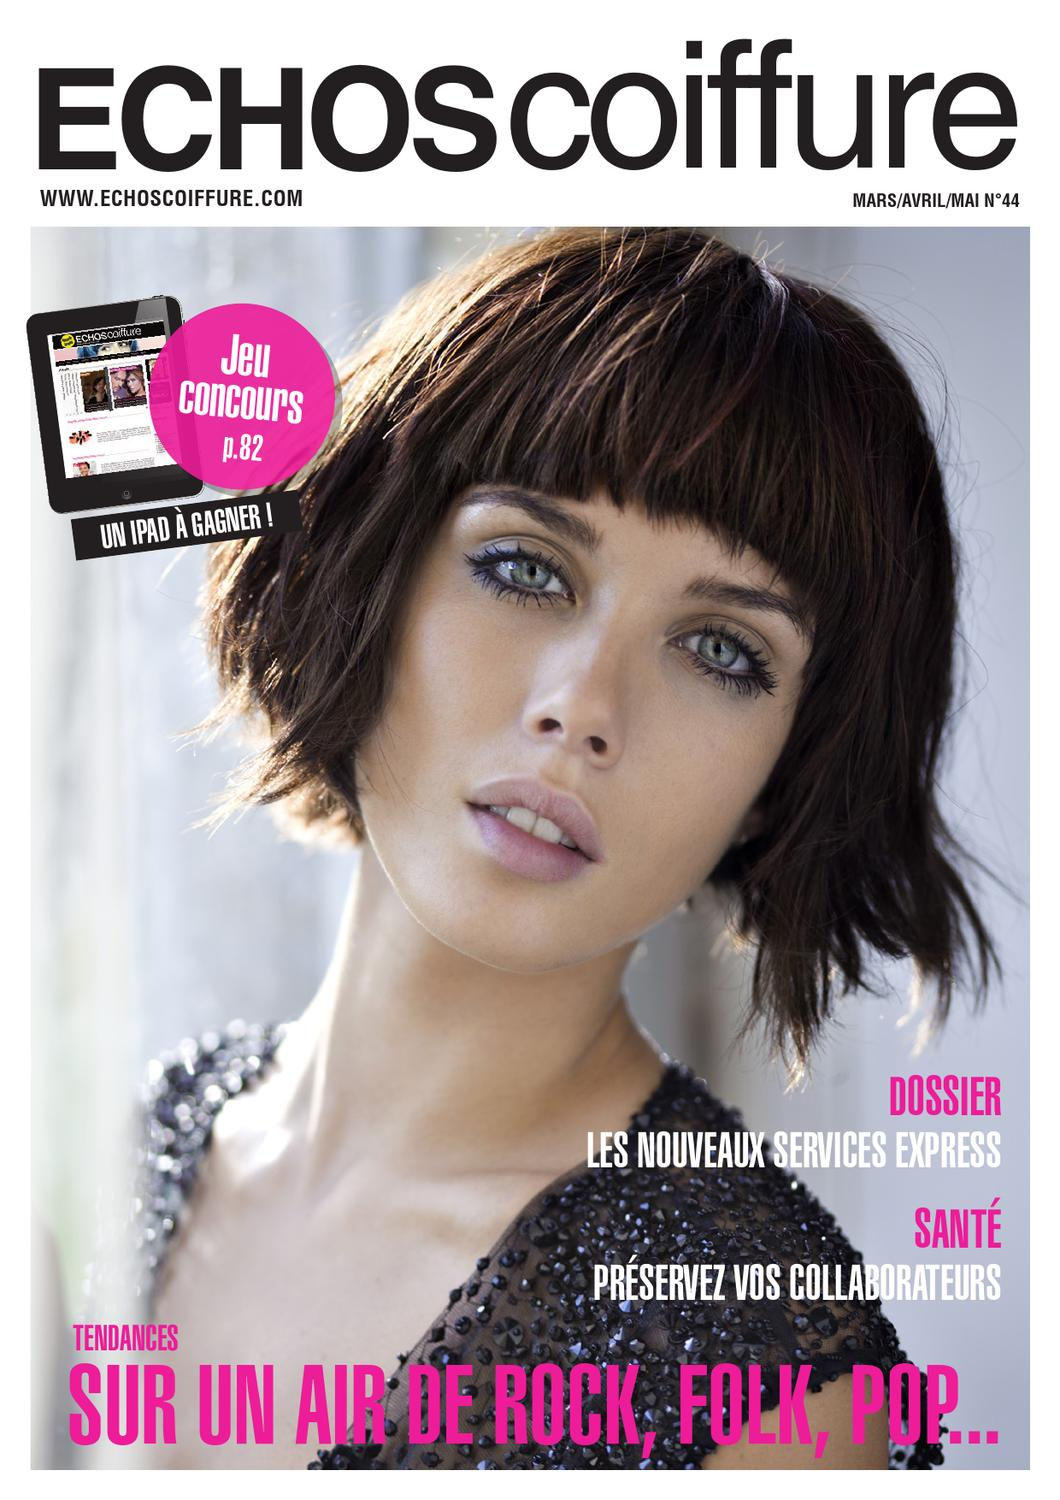 Echos coiffure france n°45 by eurobest products   issuu